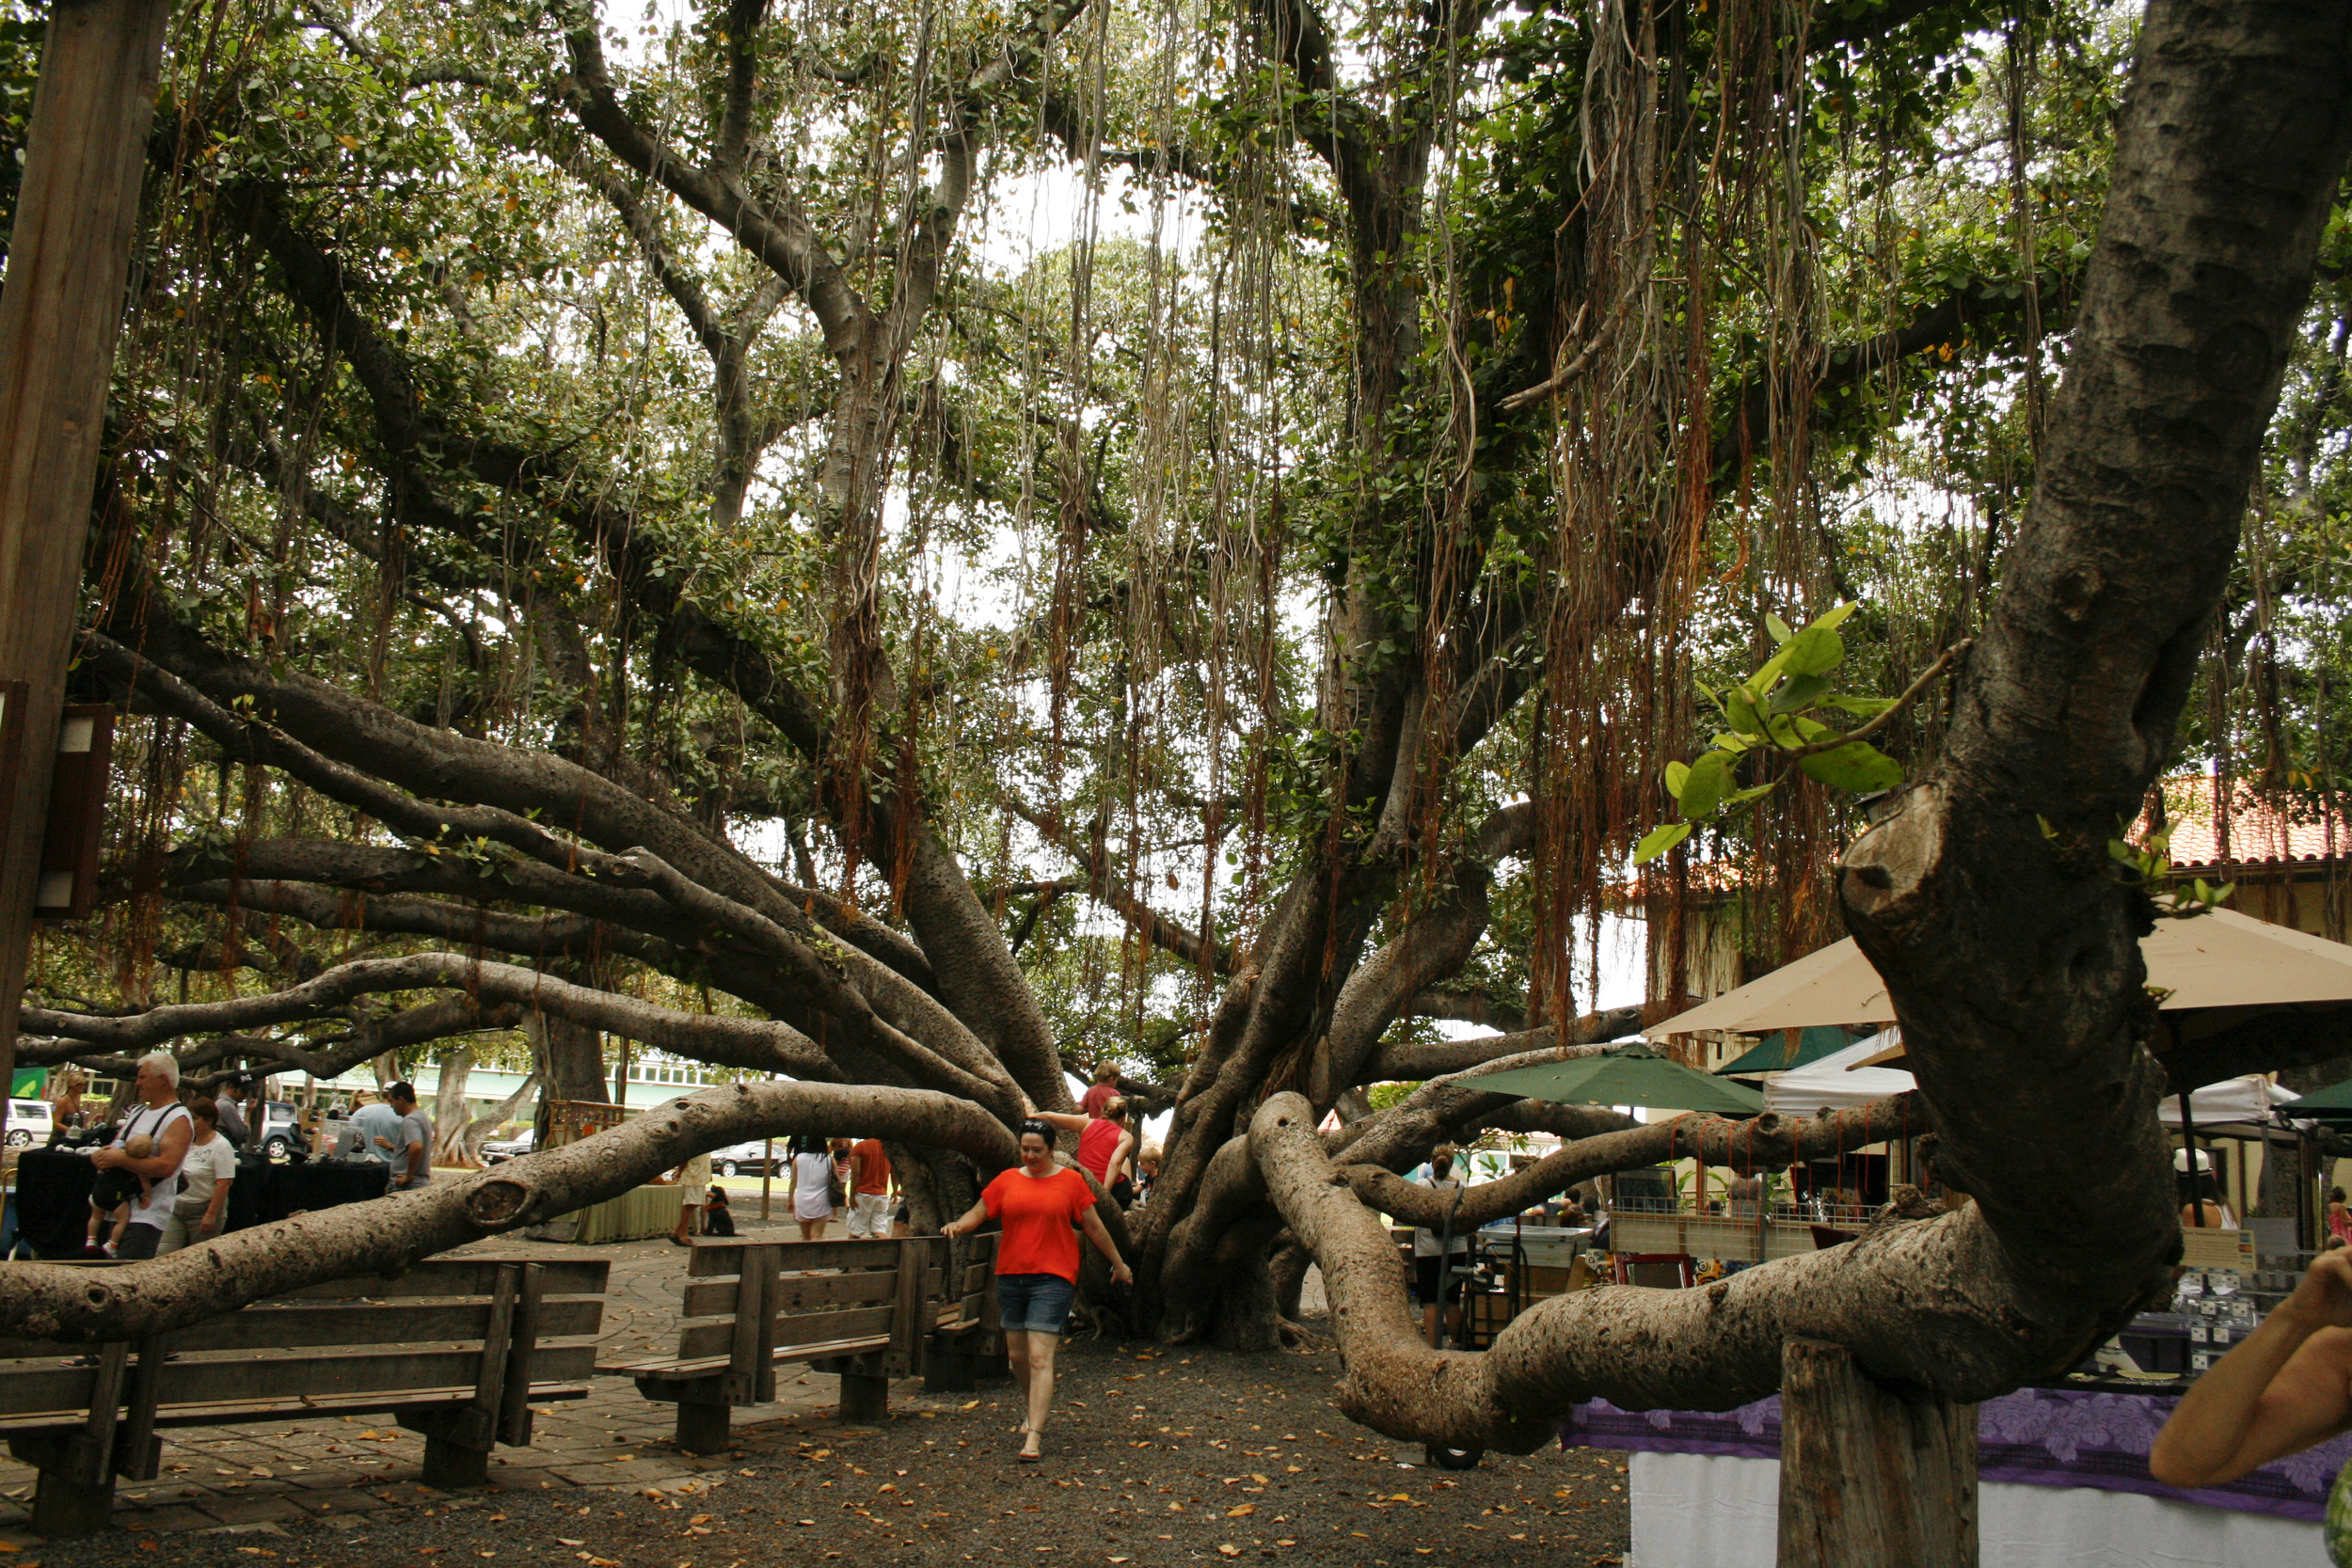 The Banyan Tree in Lahaina. It's roots grow down from it's branches!